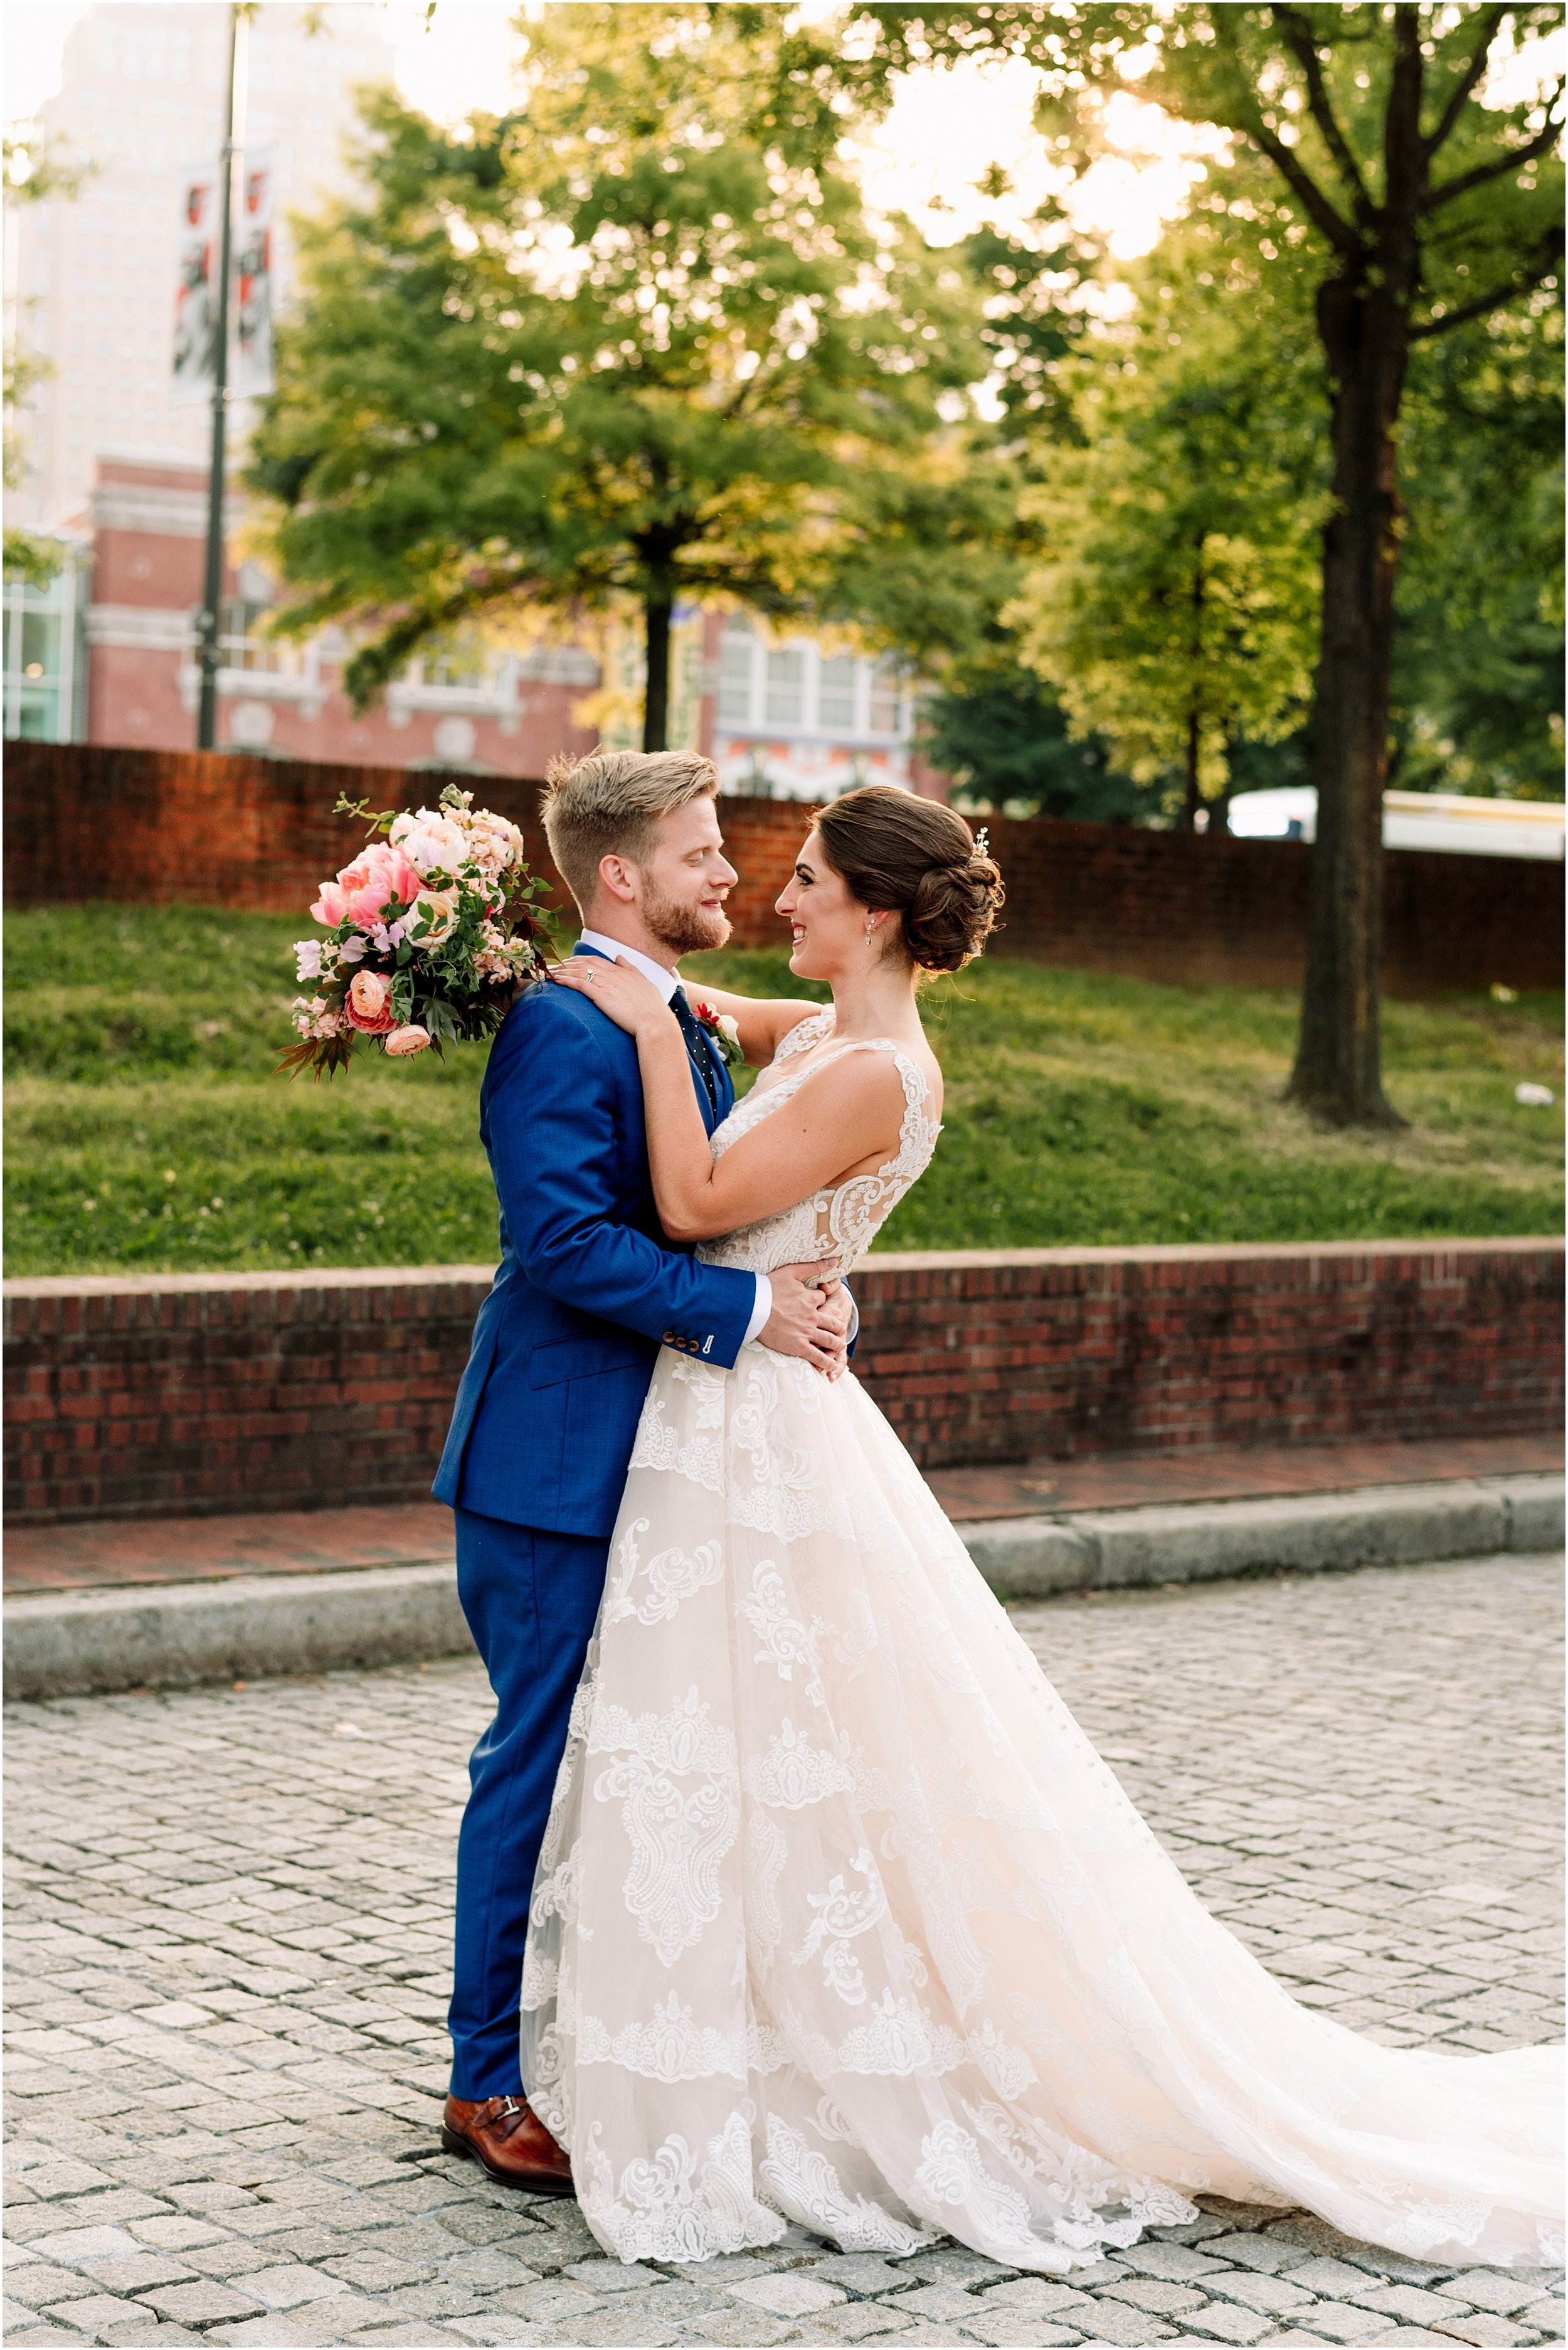 hannah leigh photography 1840s plaza wedding baltimore md_0096.jpg